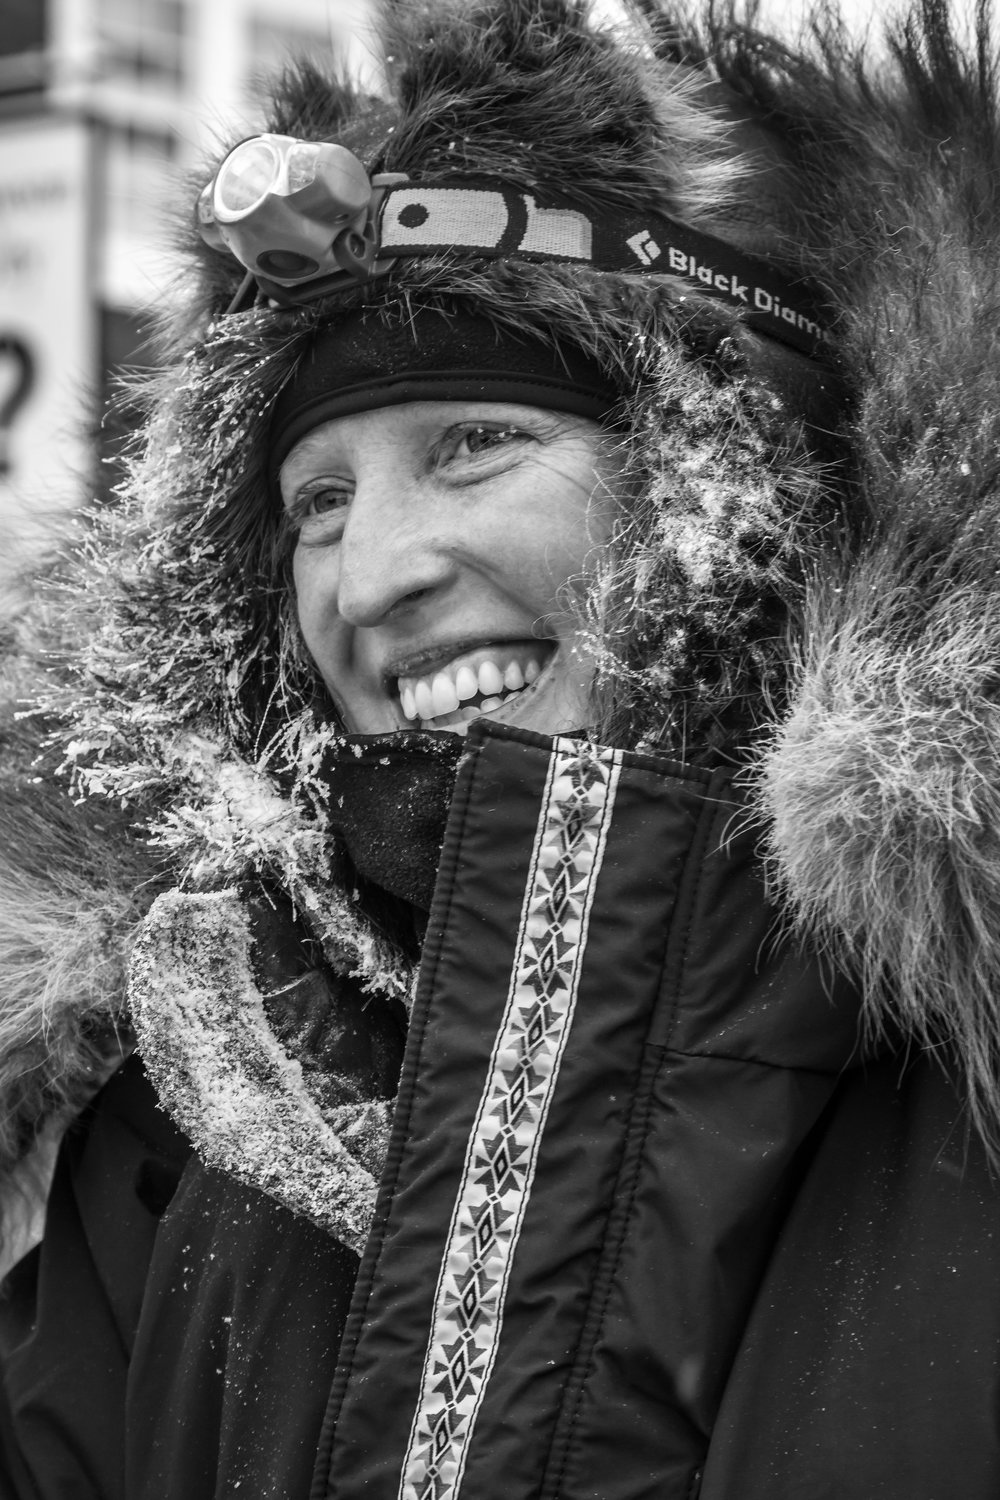 Kristin Knight Pace at Dawson City checkpoint on the 1,000-Mile Yukon Quest International Sled Dog Race. Photo by Scott Chesney.